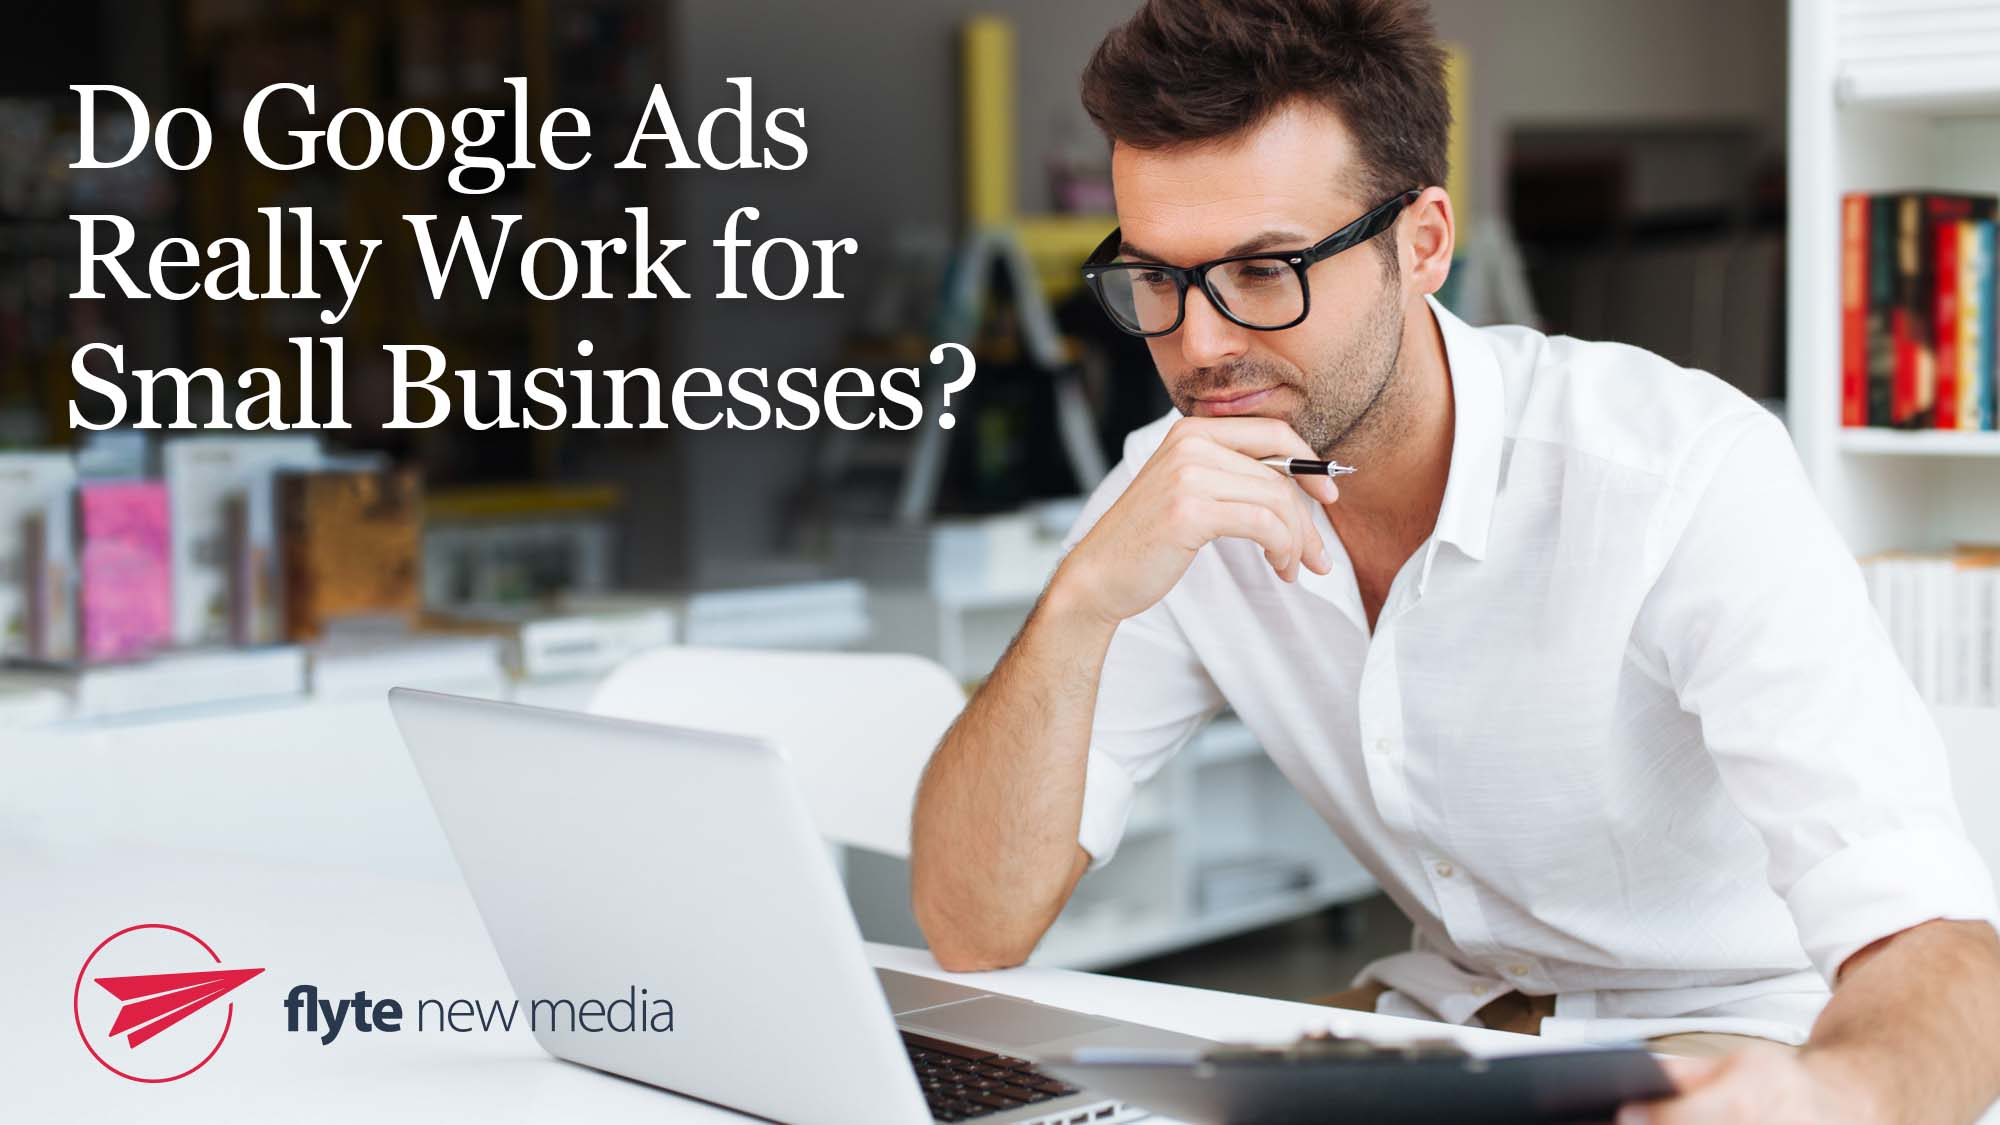 Do Google Ads Really Work for Small Business?